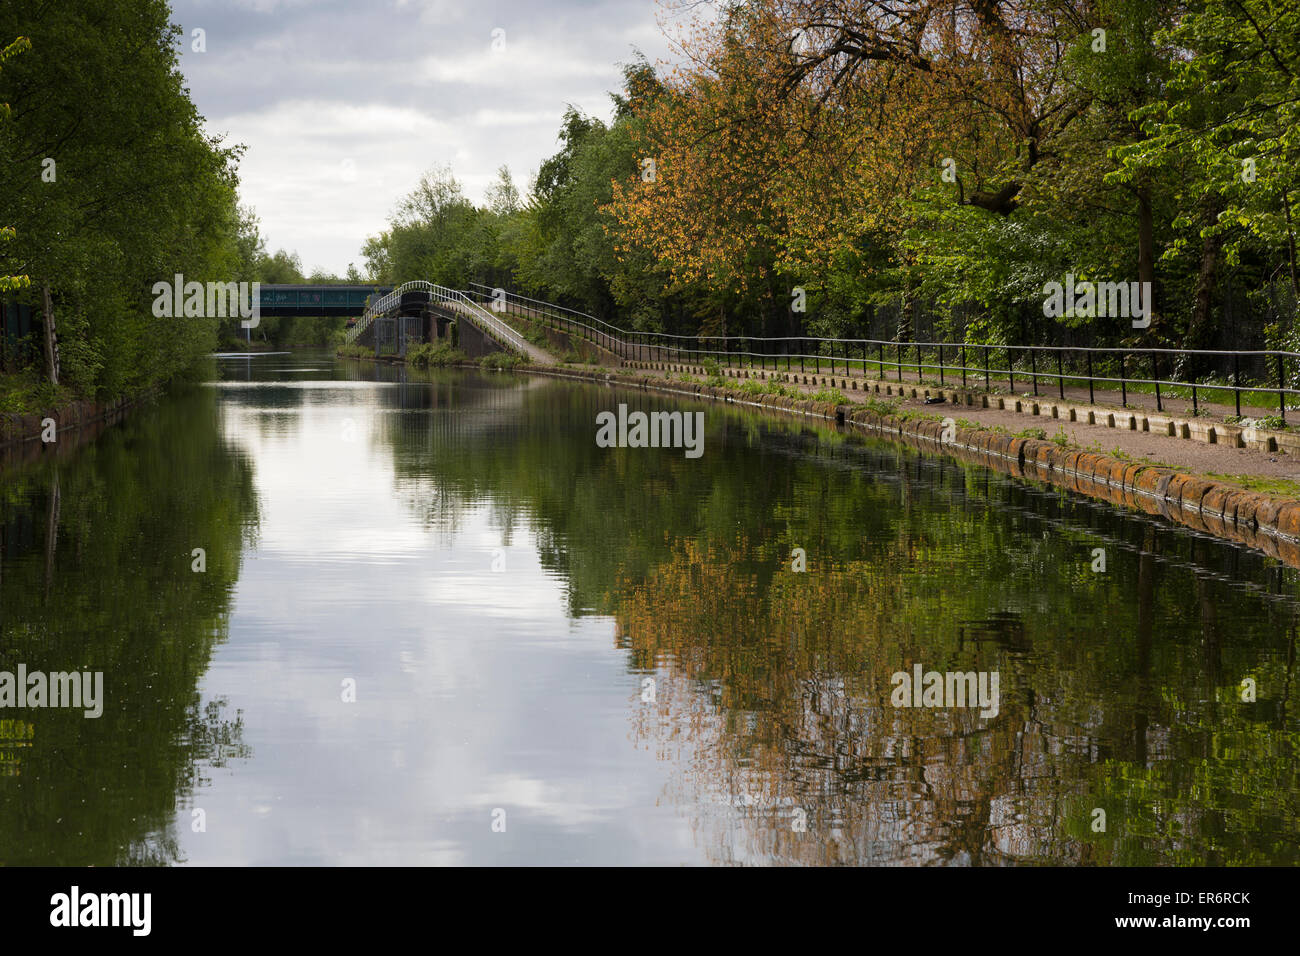 The Bridgewater Canal at Barton, Manchester - Stock Image